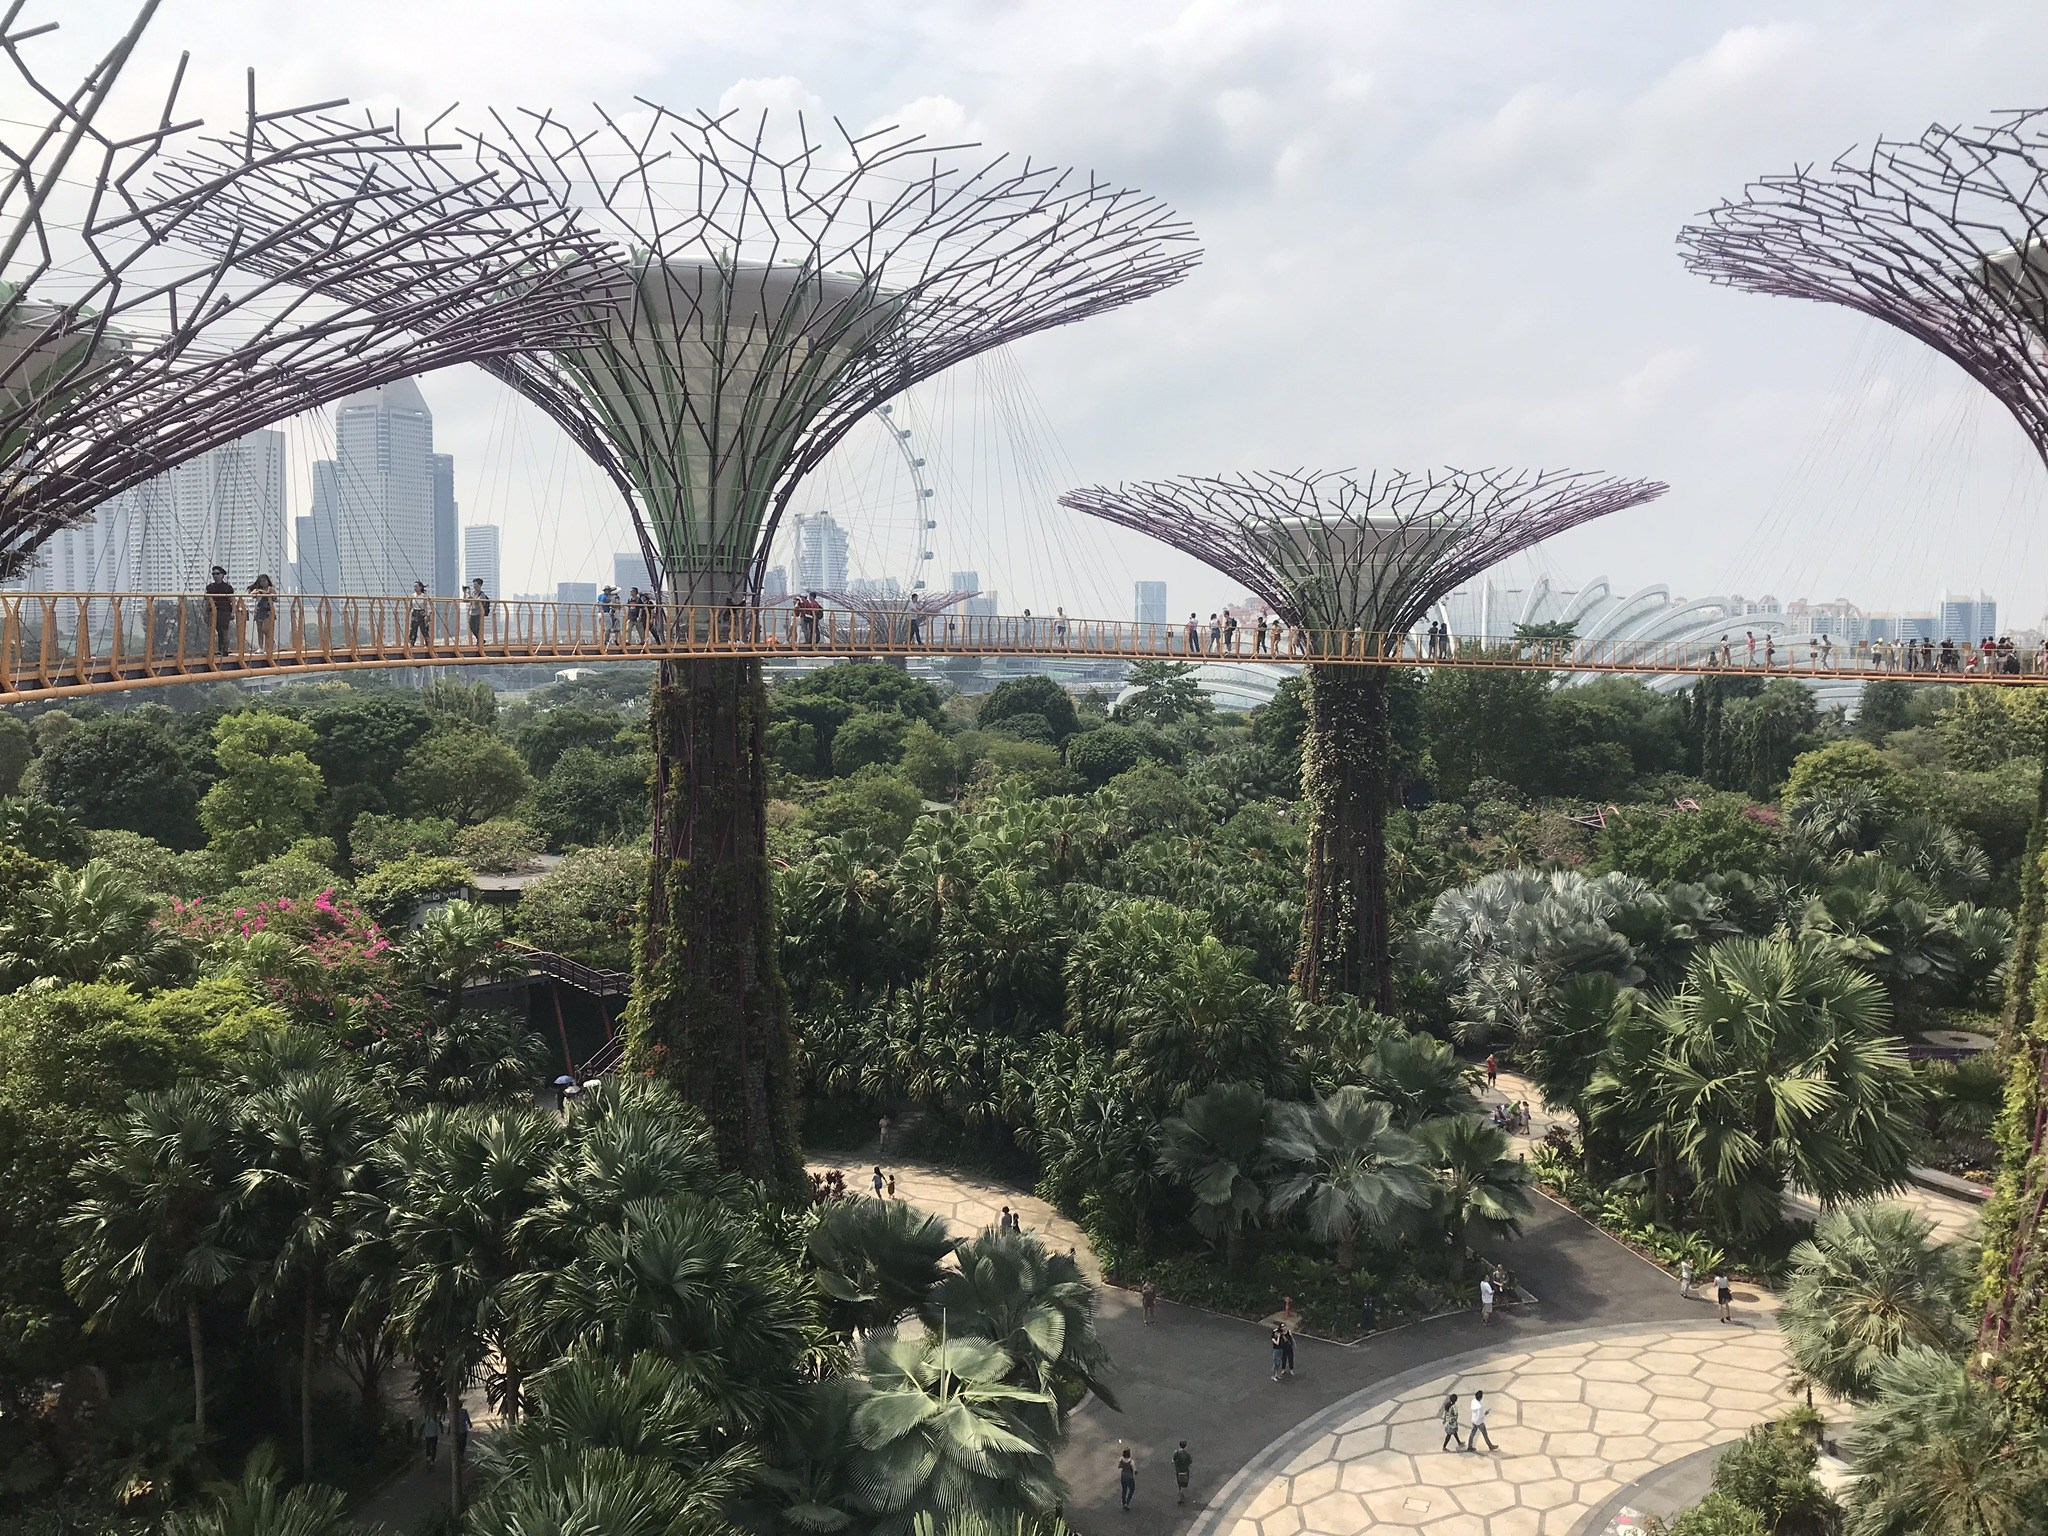 Rooftop walk at Gardens by the Bay